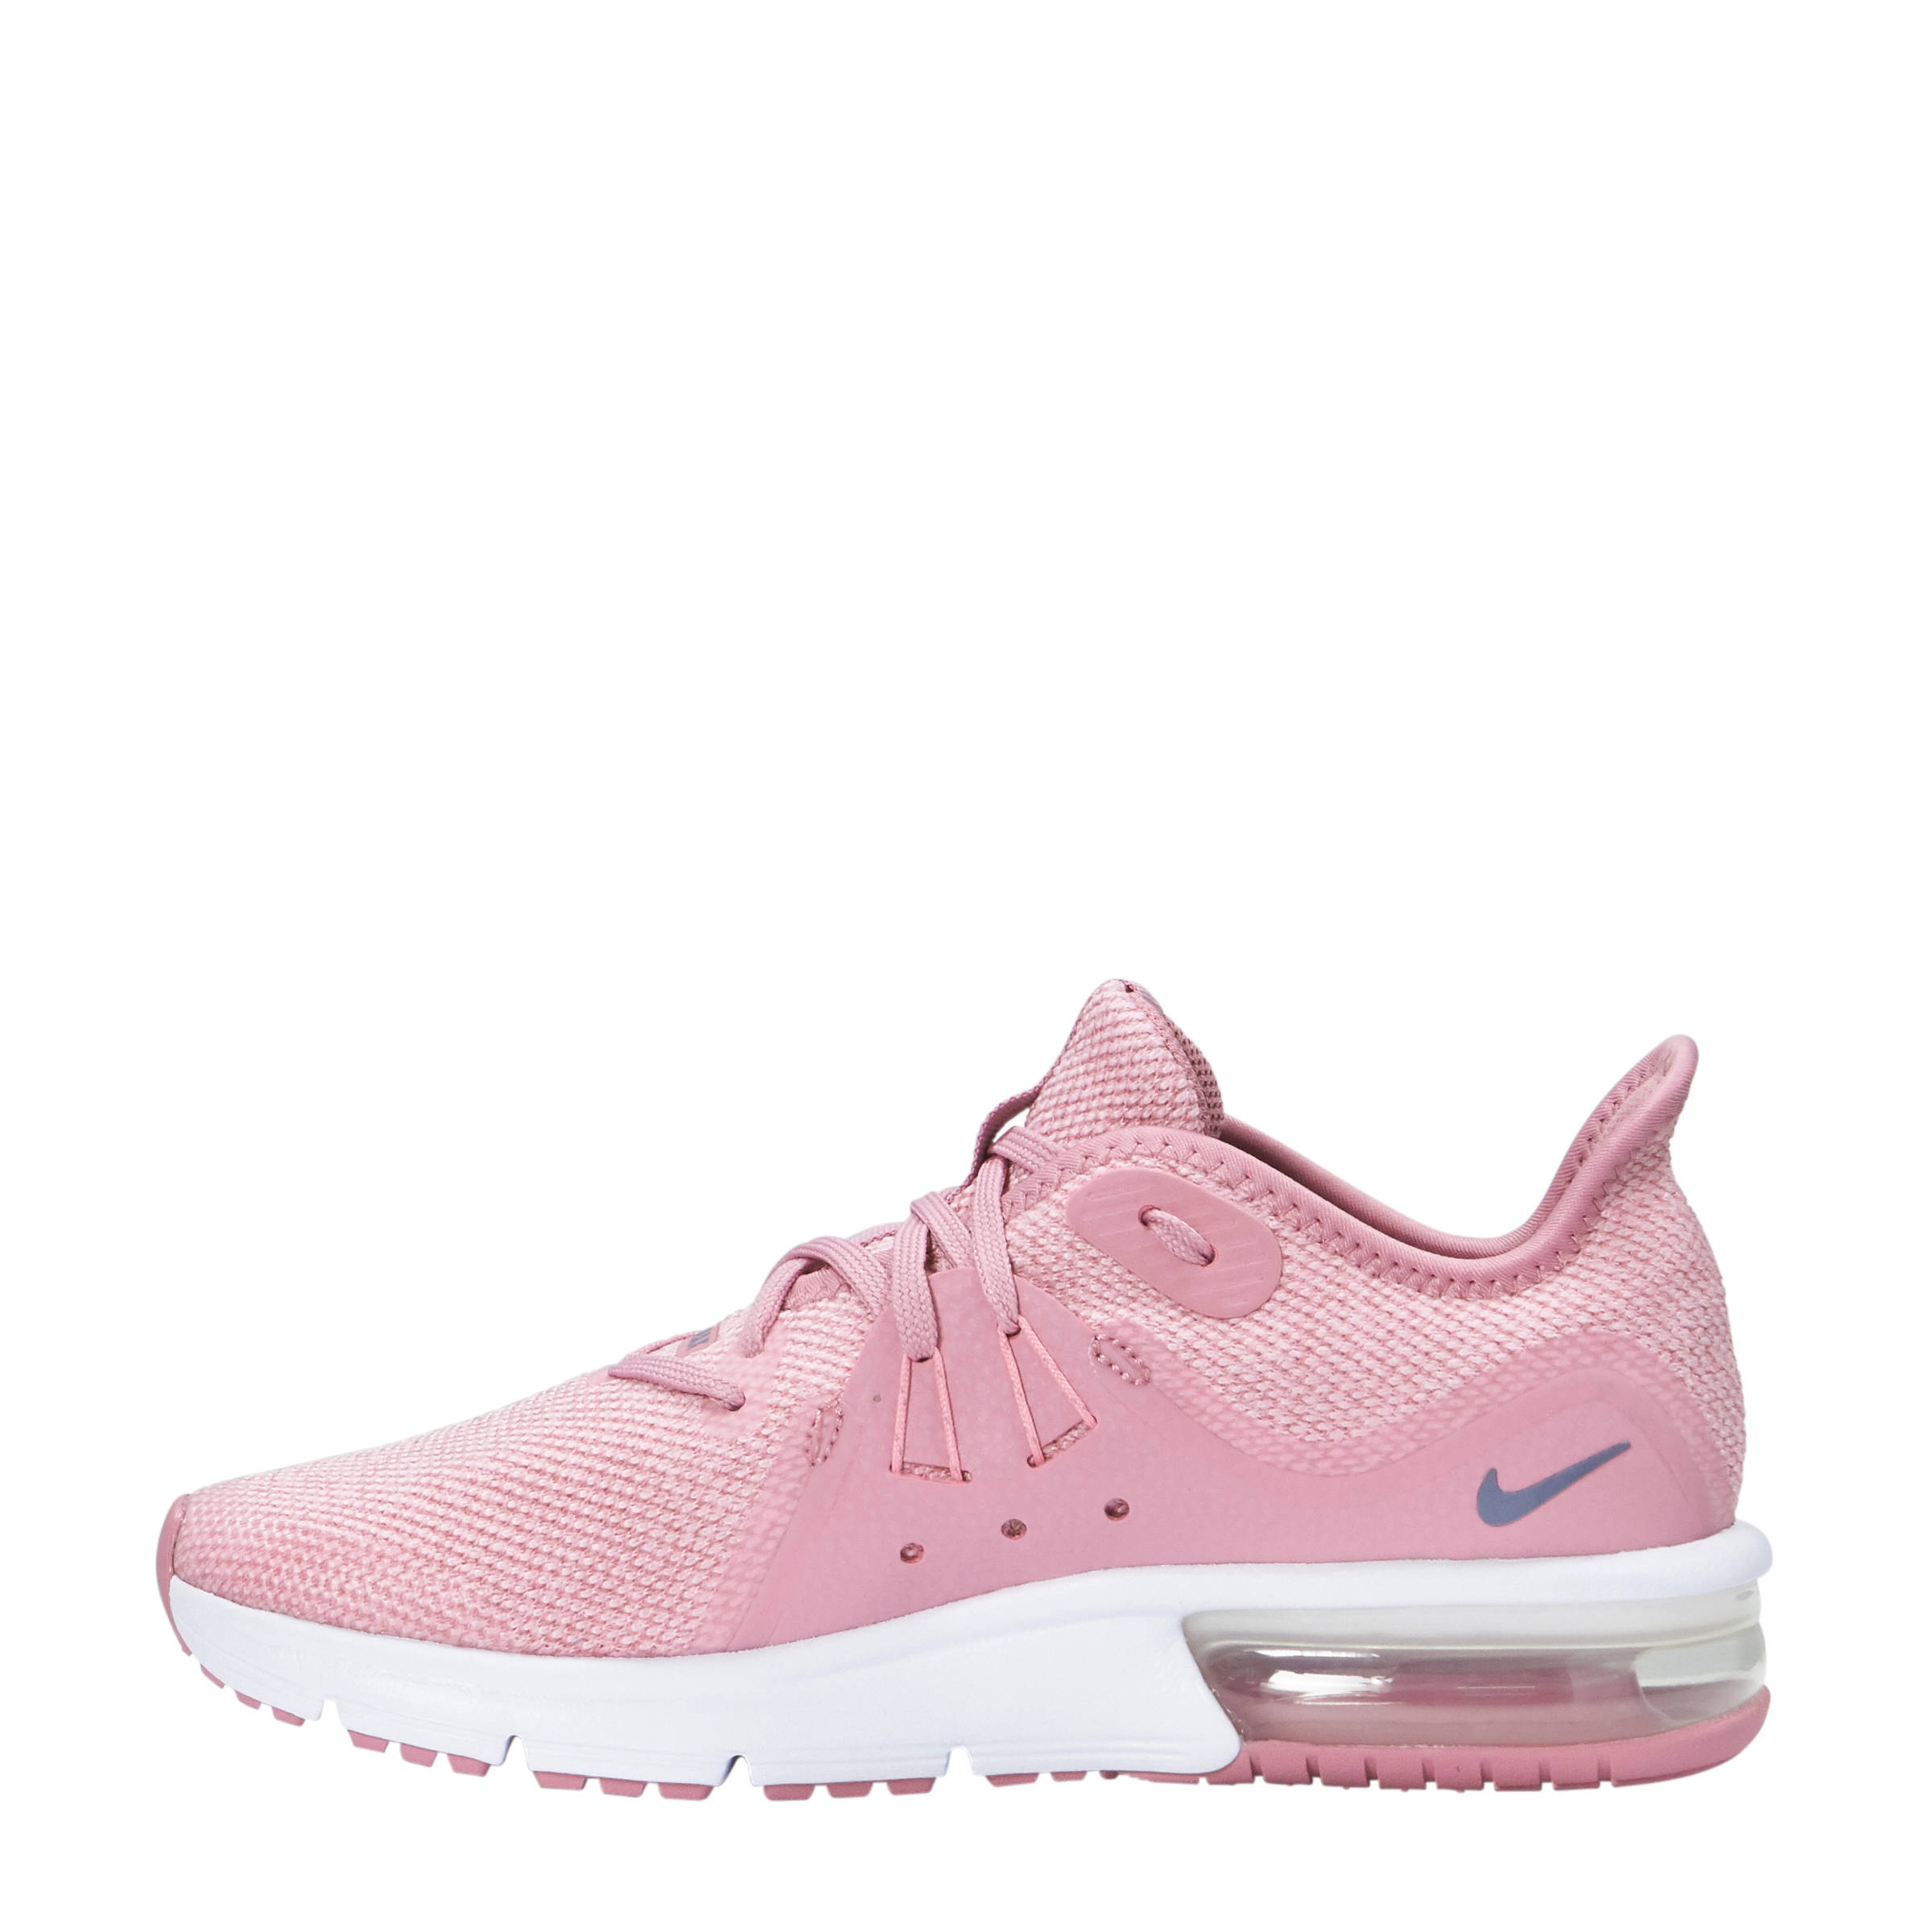 nike air max sequent roze